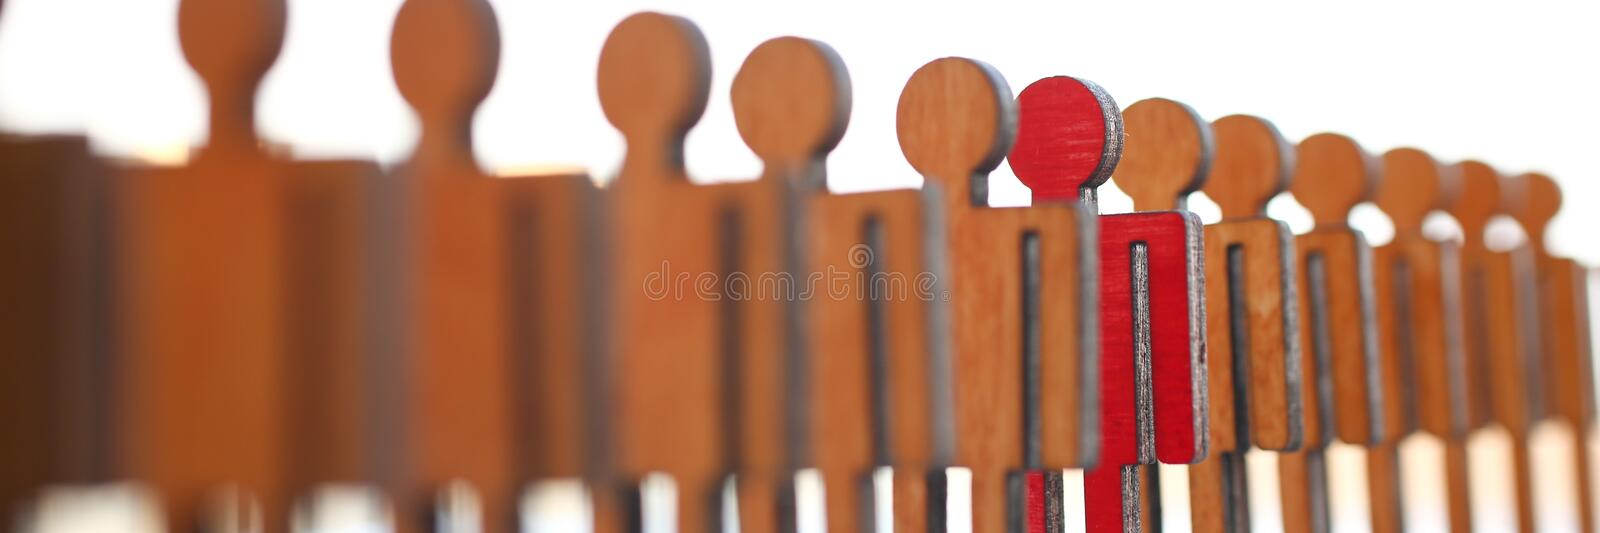 Male red plastic toy businessman silhouette. Wooden figure background closeup. Manipulate work recruitment transfer labour inspectorate experience exchange man royalty free stock photography